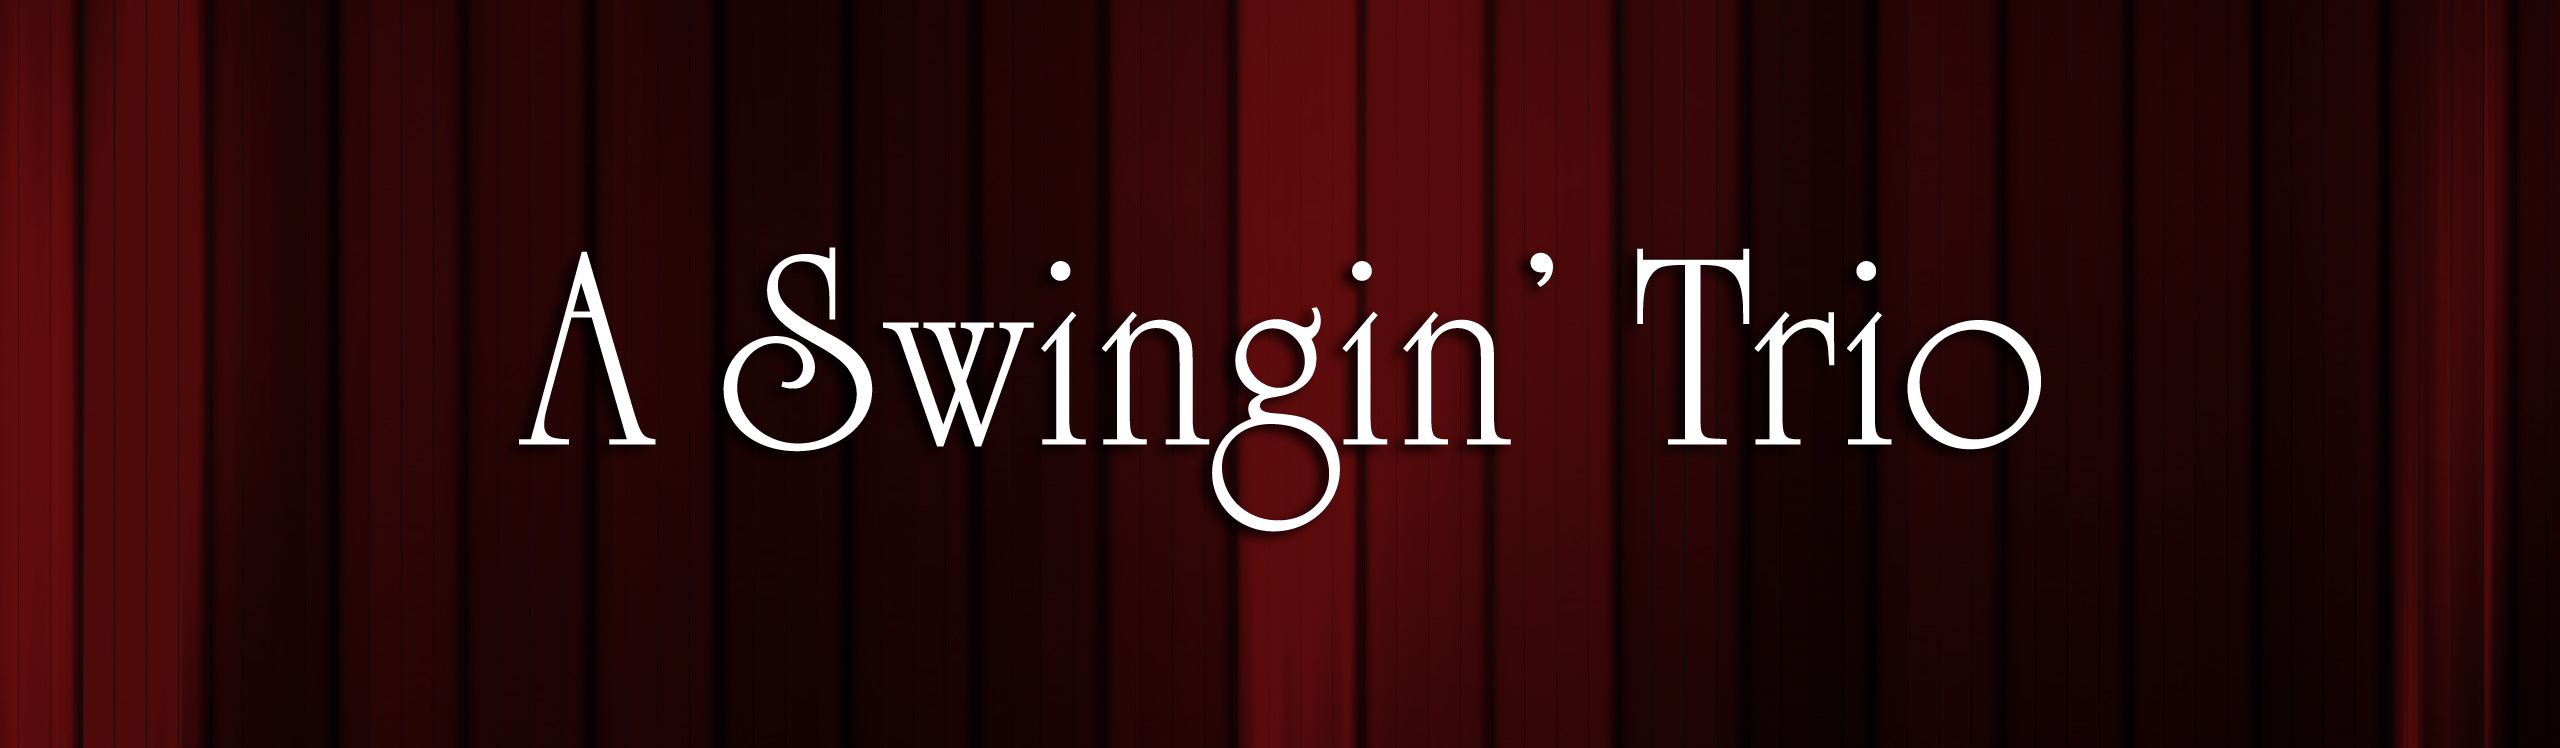 A Swingin' Trio Title Design